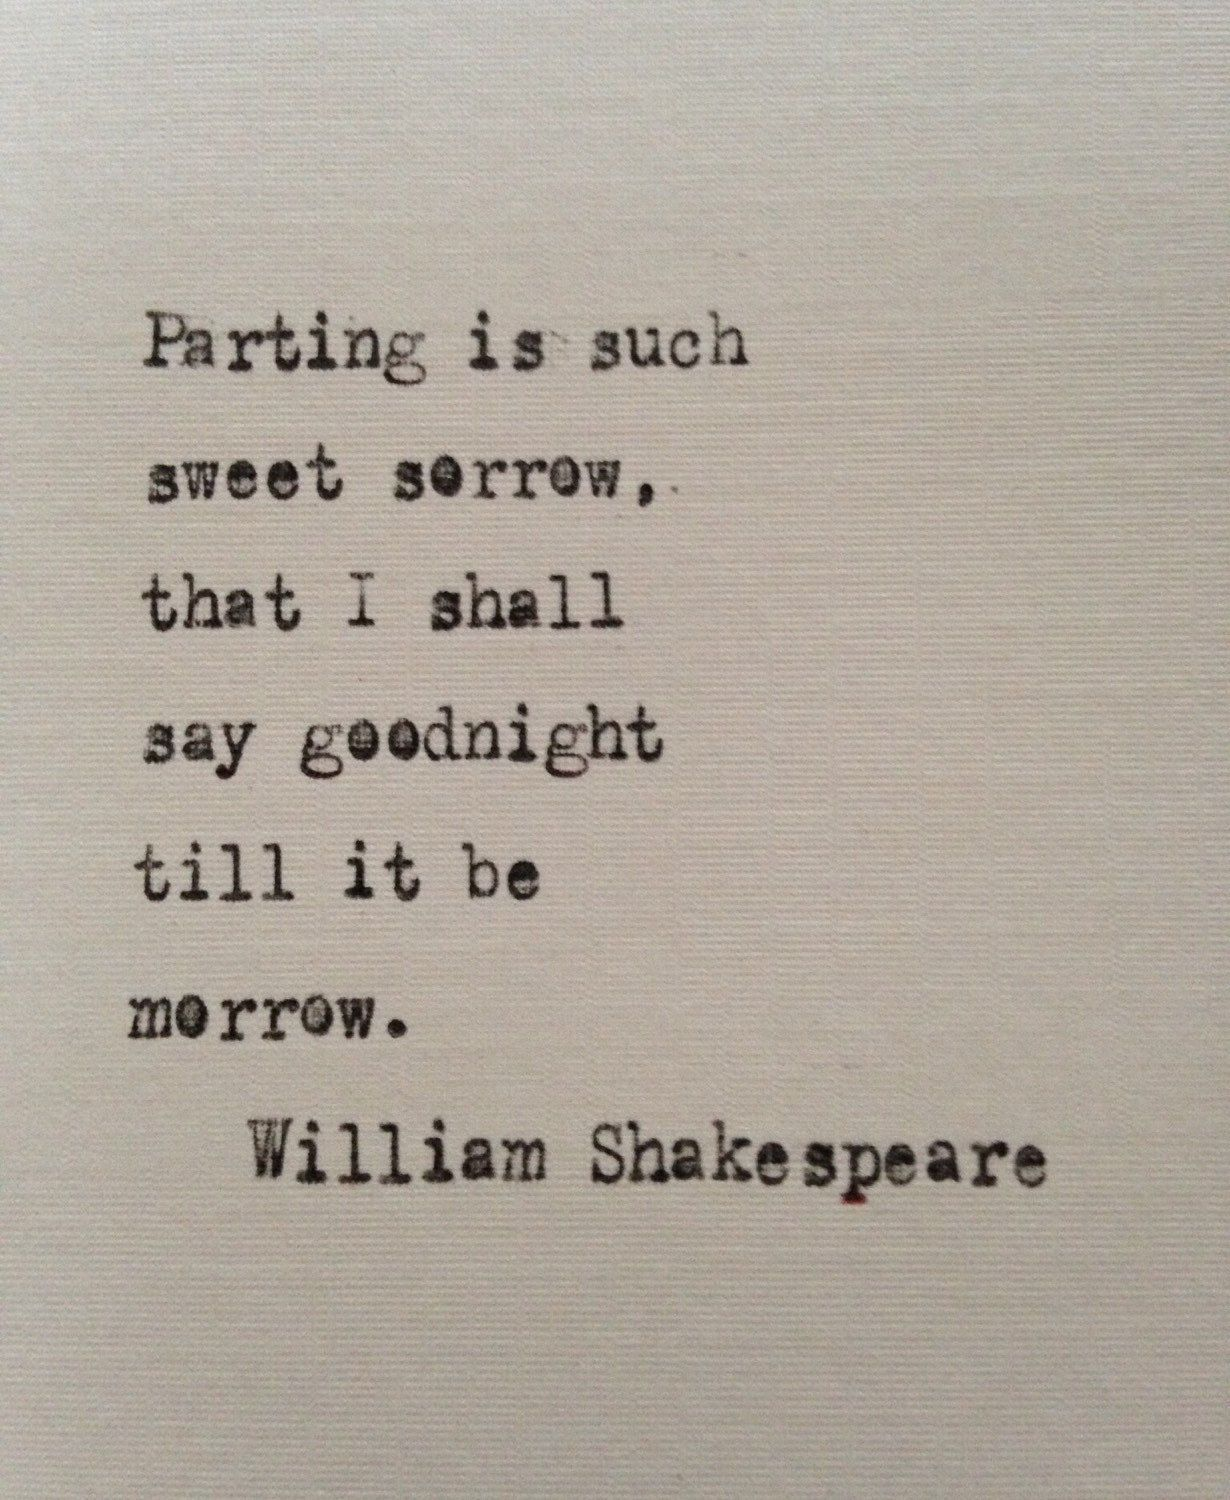 William Shakespeare Romeo and Juliet quote typed on typewriter